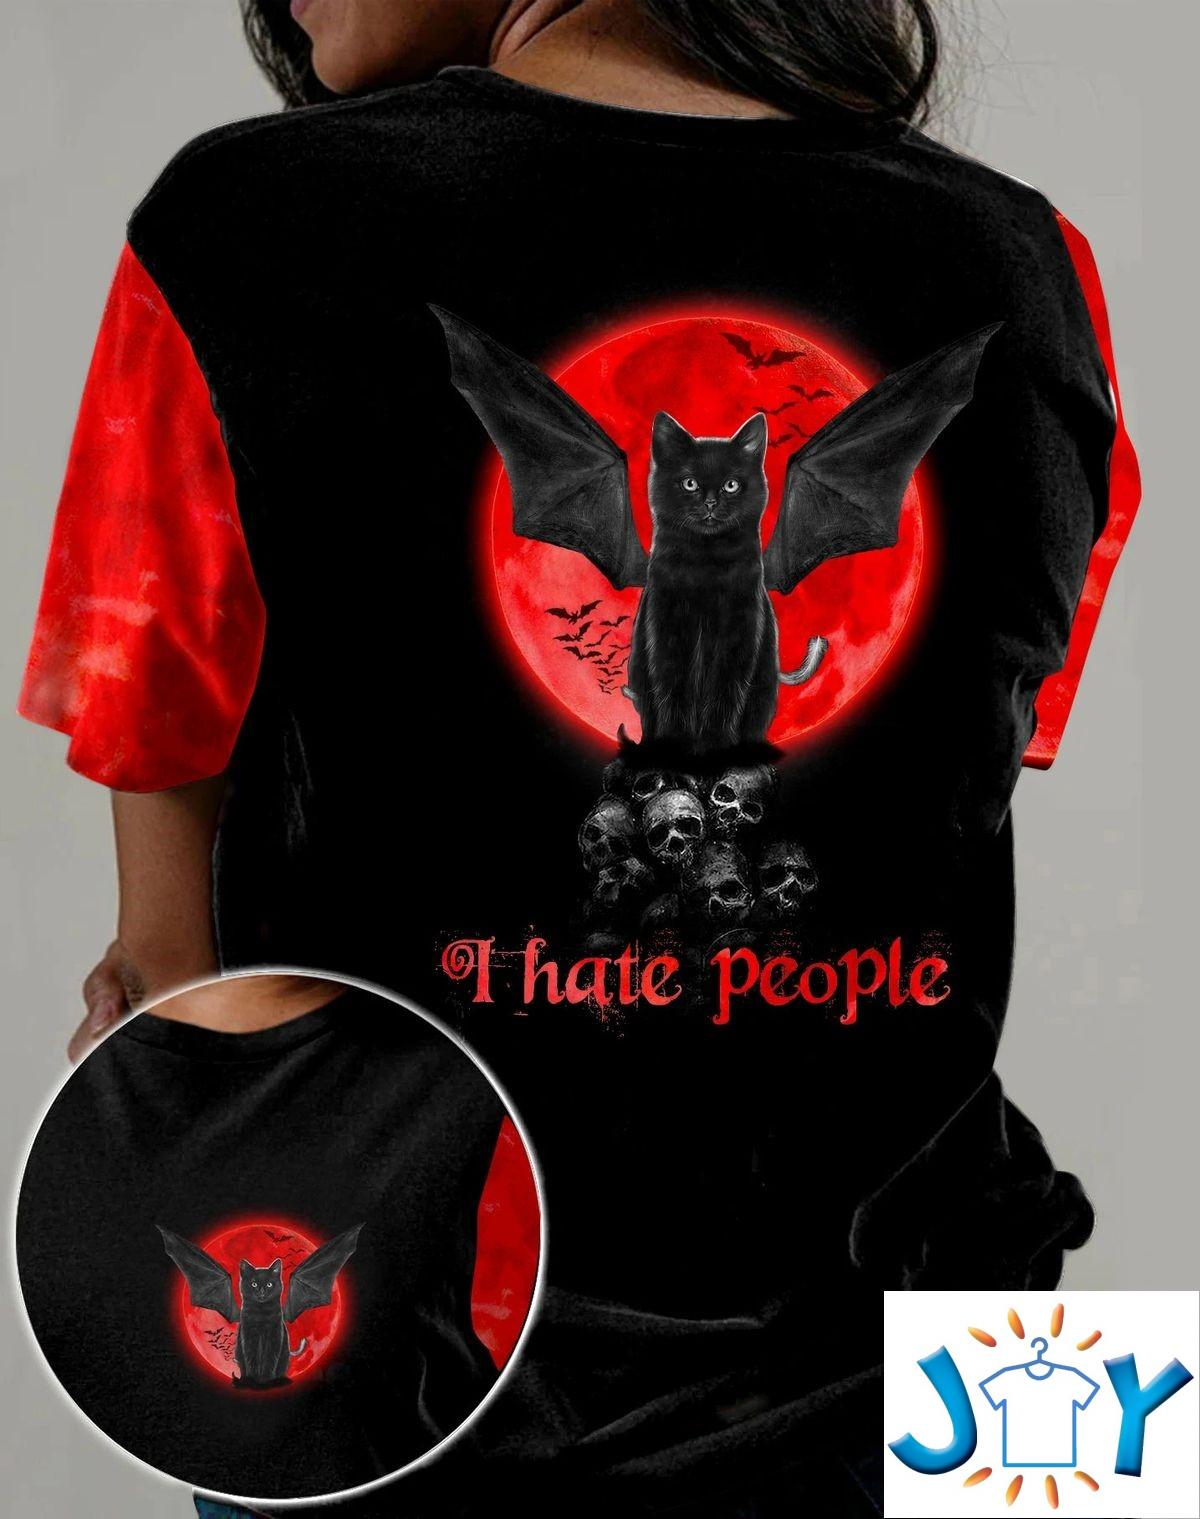 Black Cat Skull I Hate People 3D All Over Print T-Shirt, Hoodie